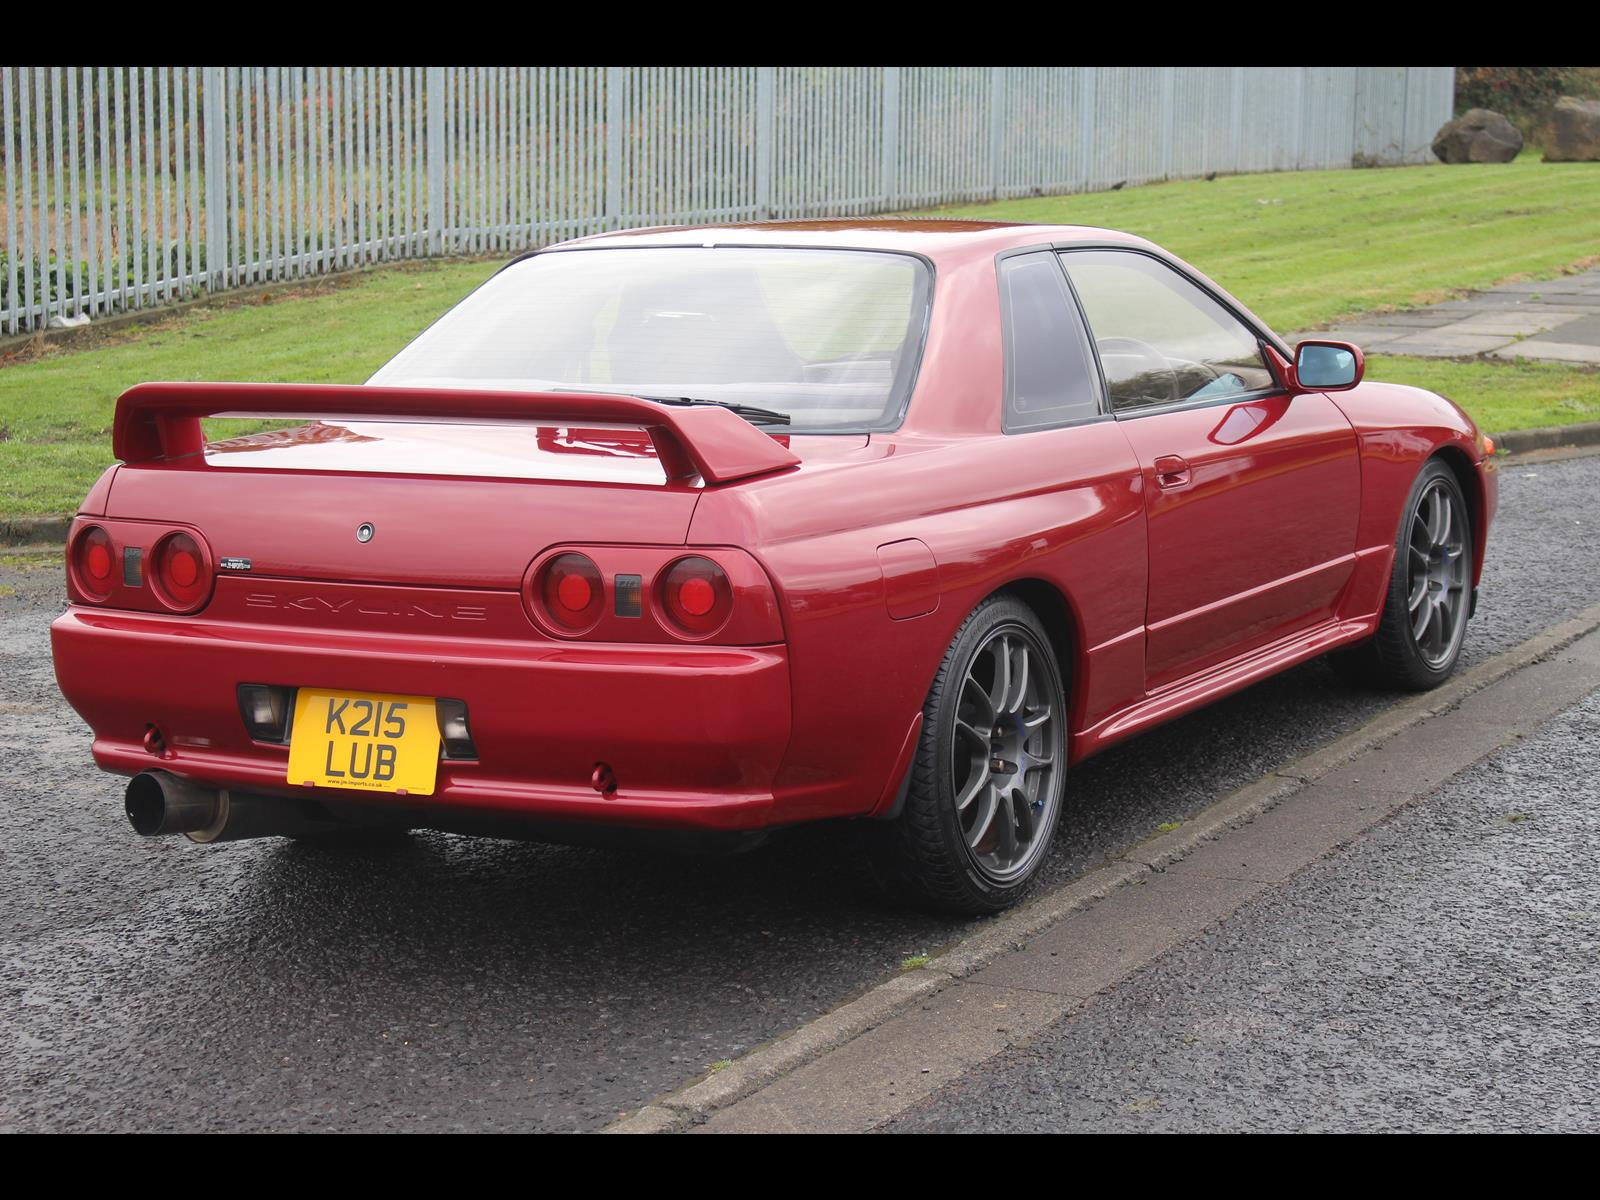 1992 Nissan Skyline R32 GTR 5 Speed Manual 430PS Forged ...